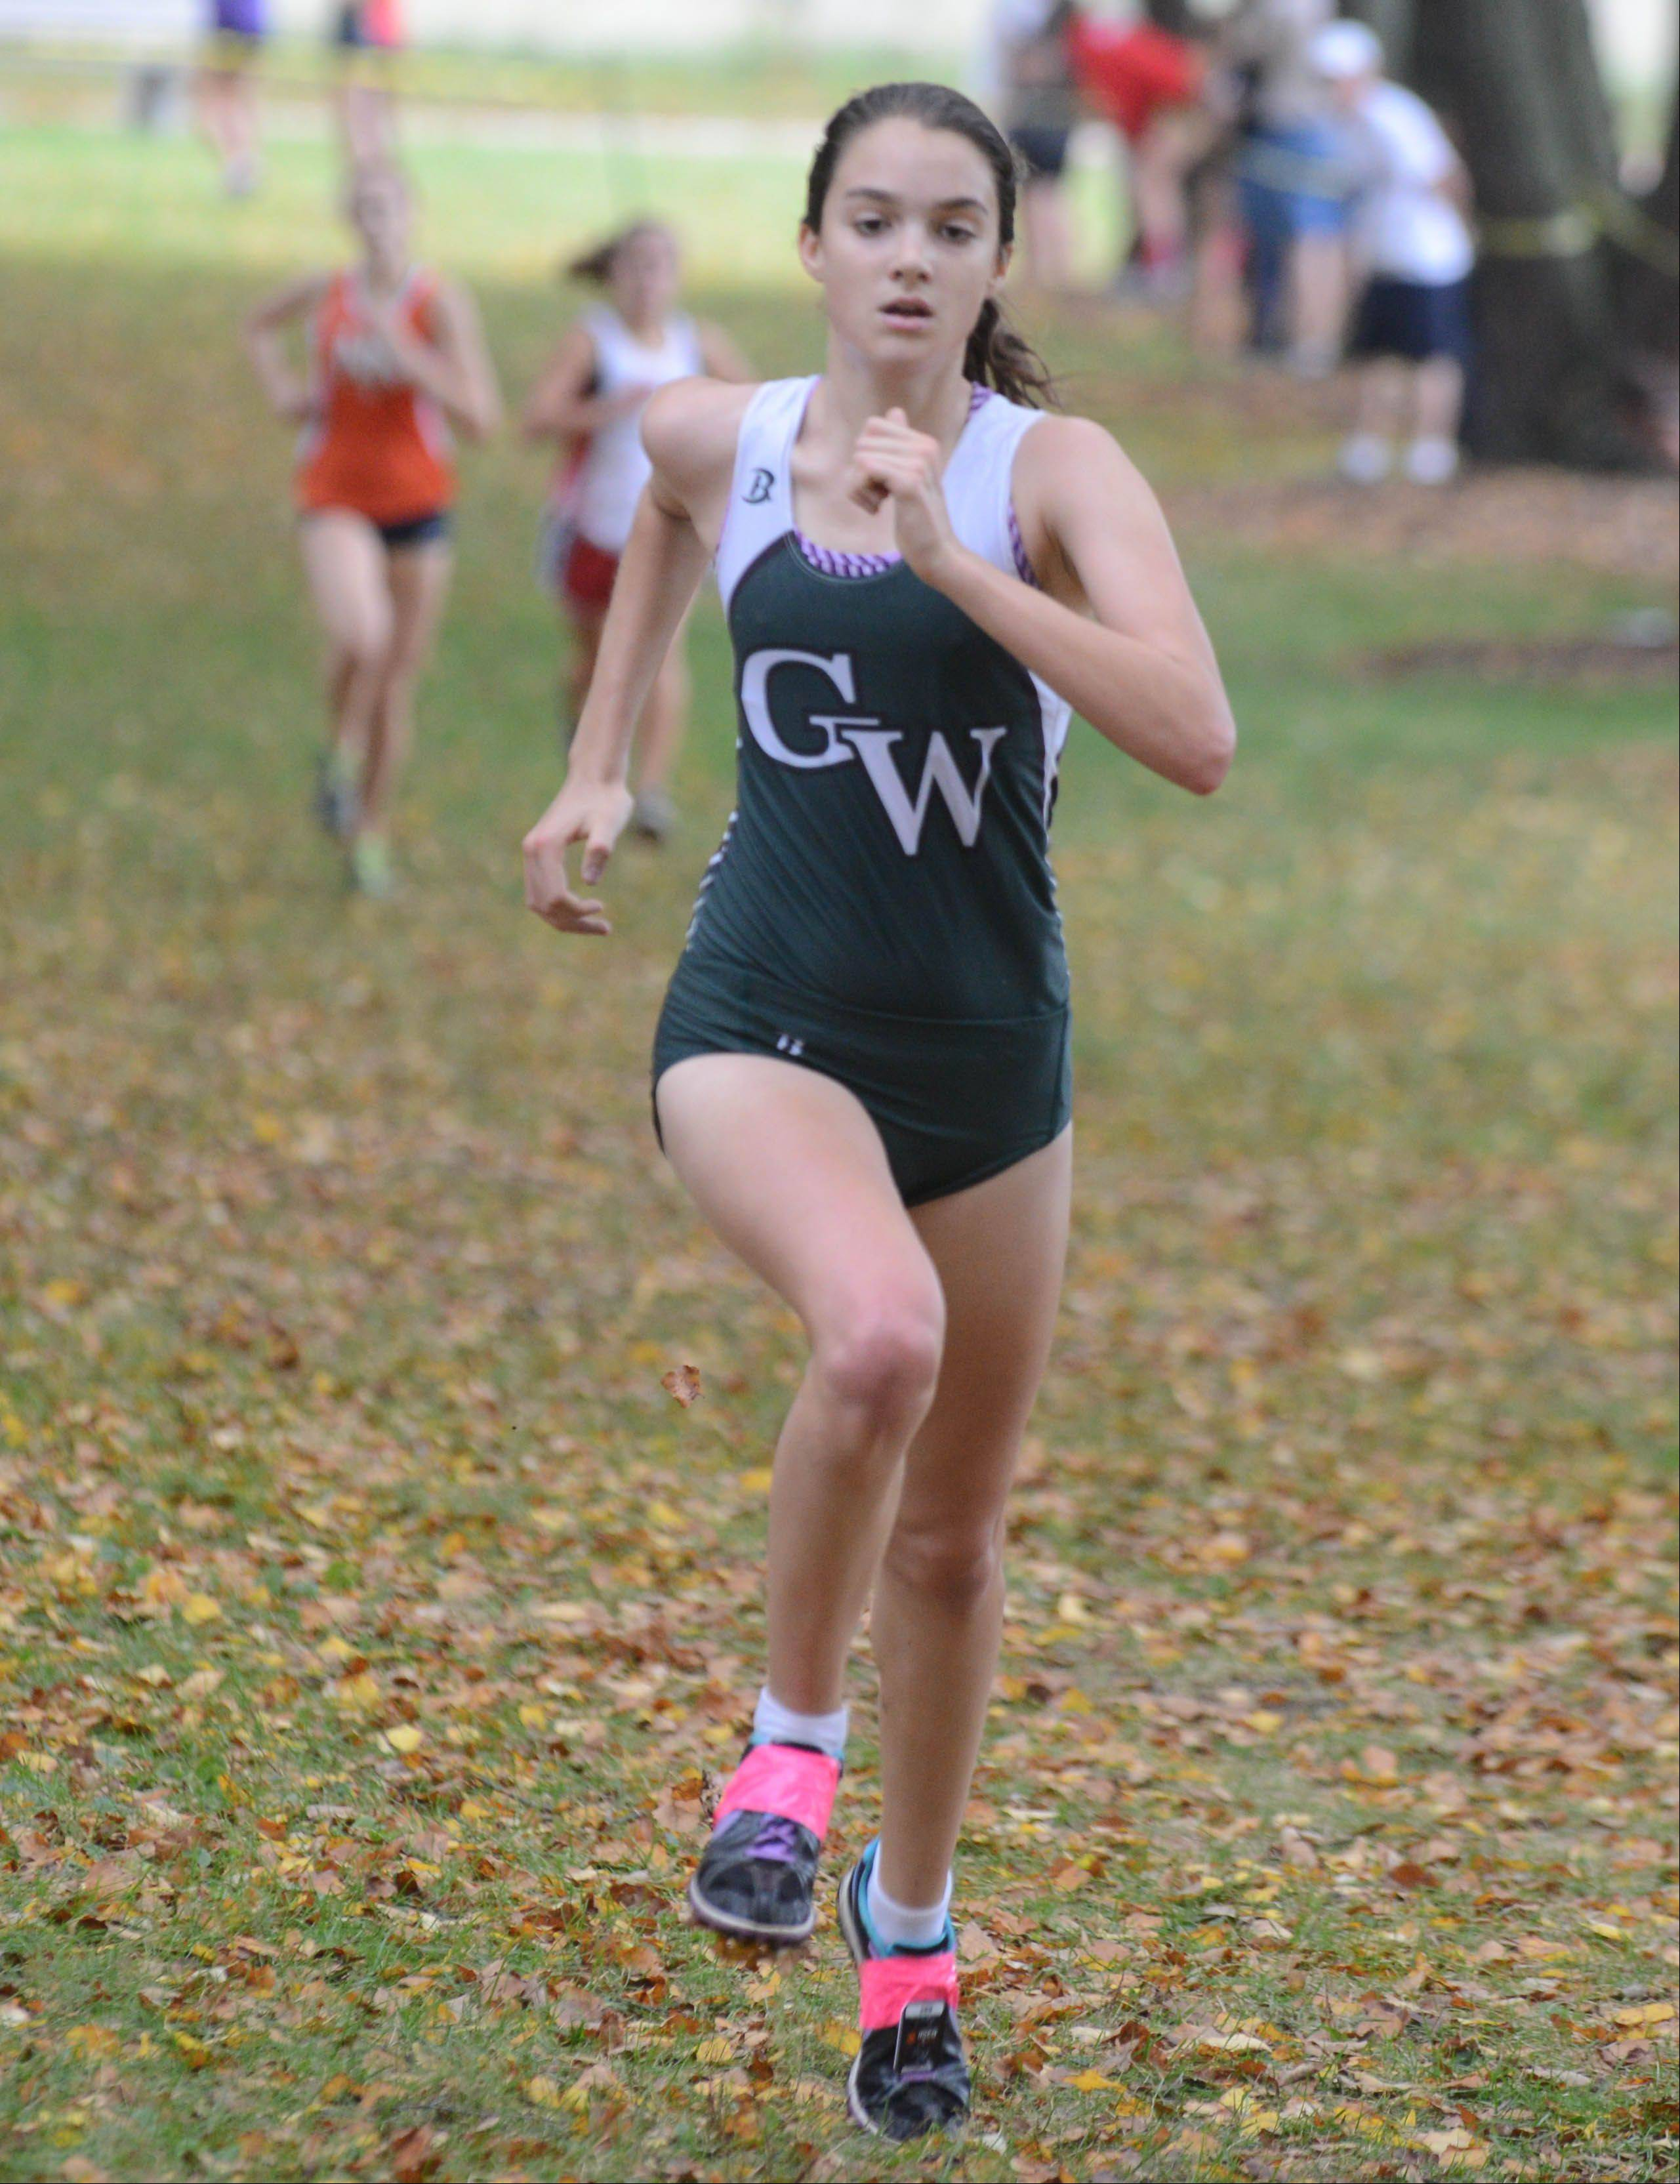 Lisa Luczak of Glenbard West took part in the Wheaton North girls cross country invitational Saturday in Wheaton.